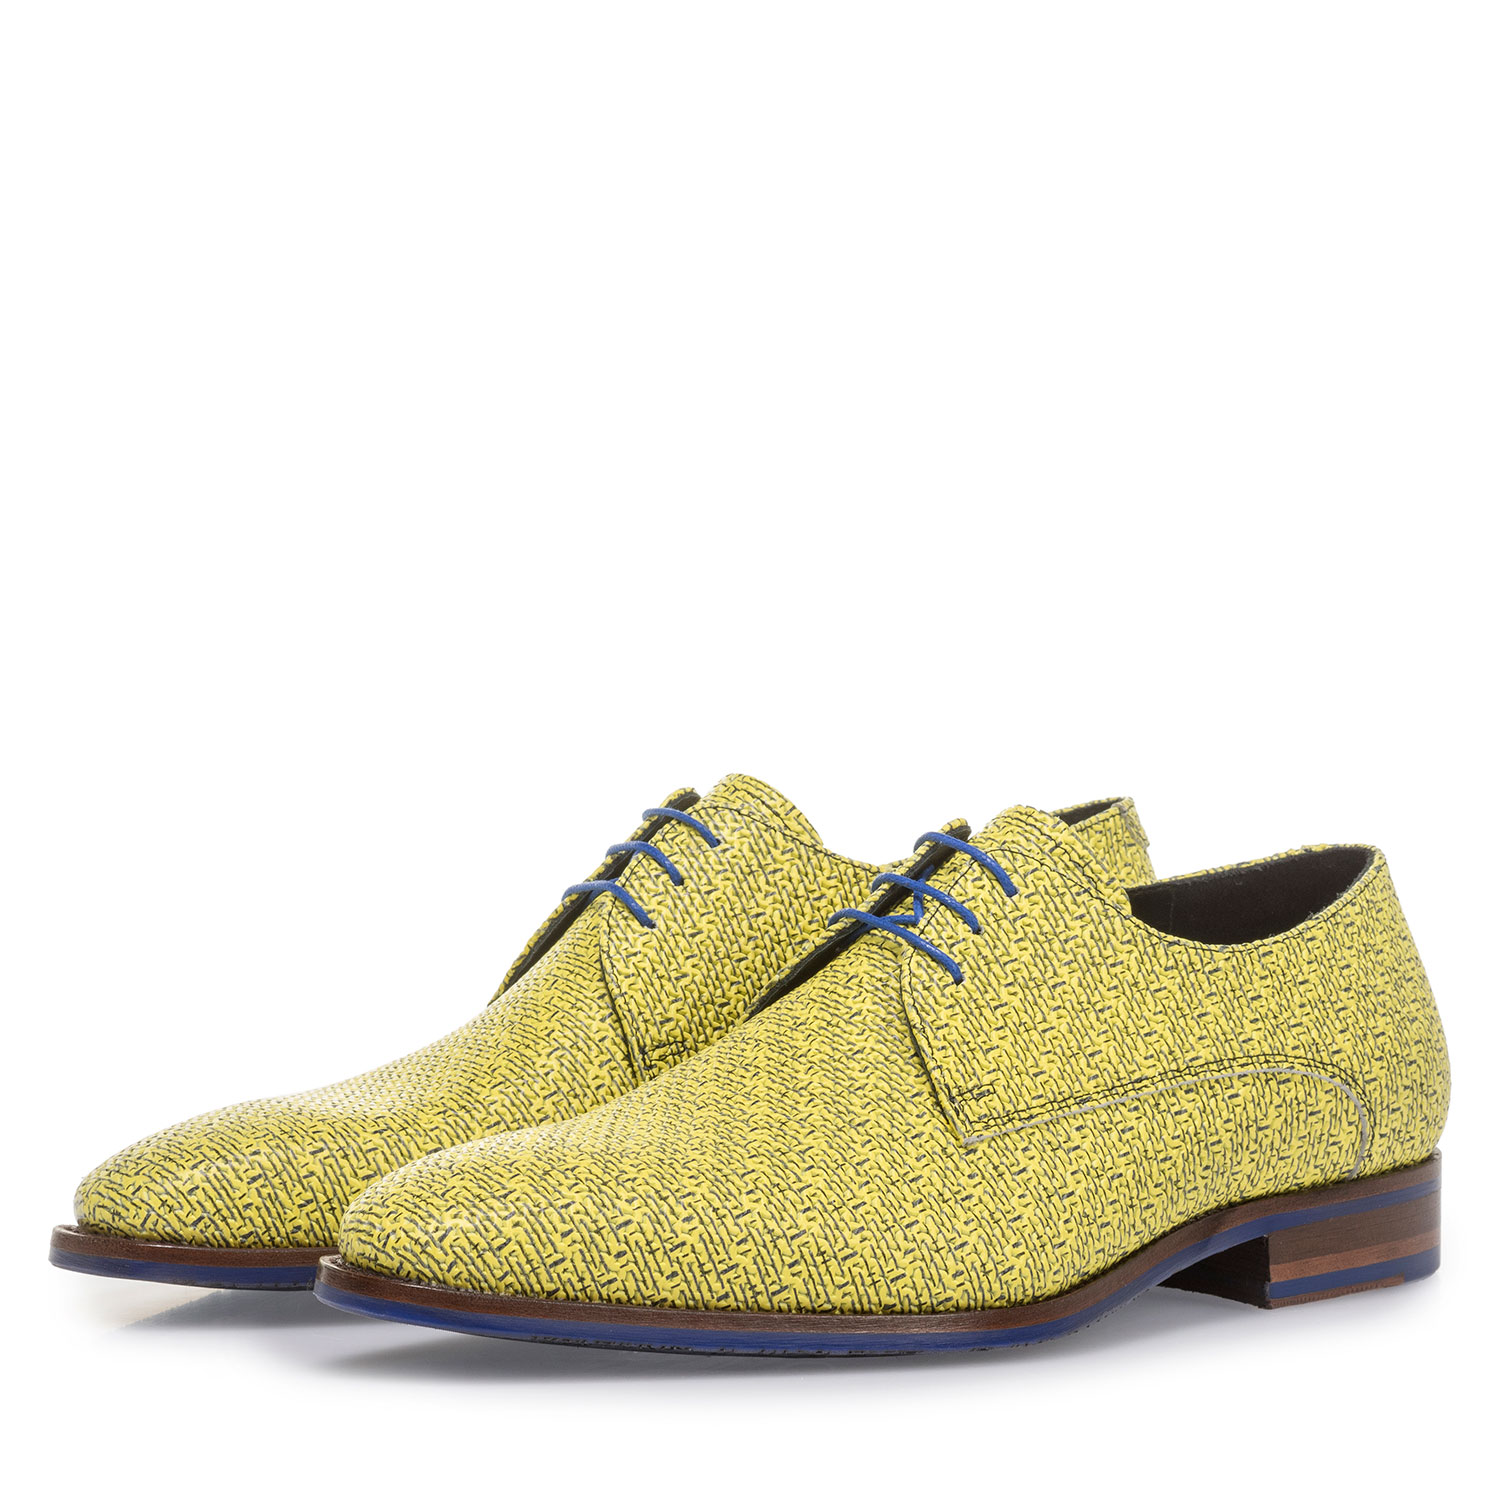 18346/02 - Yellow leather lace shoe with black print